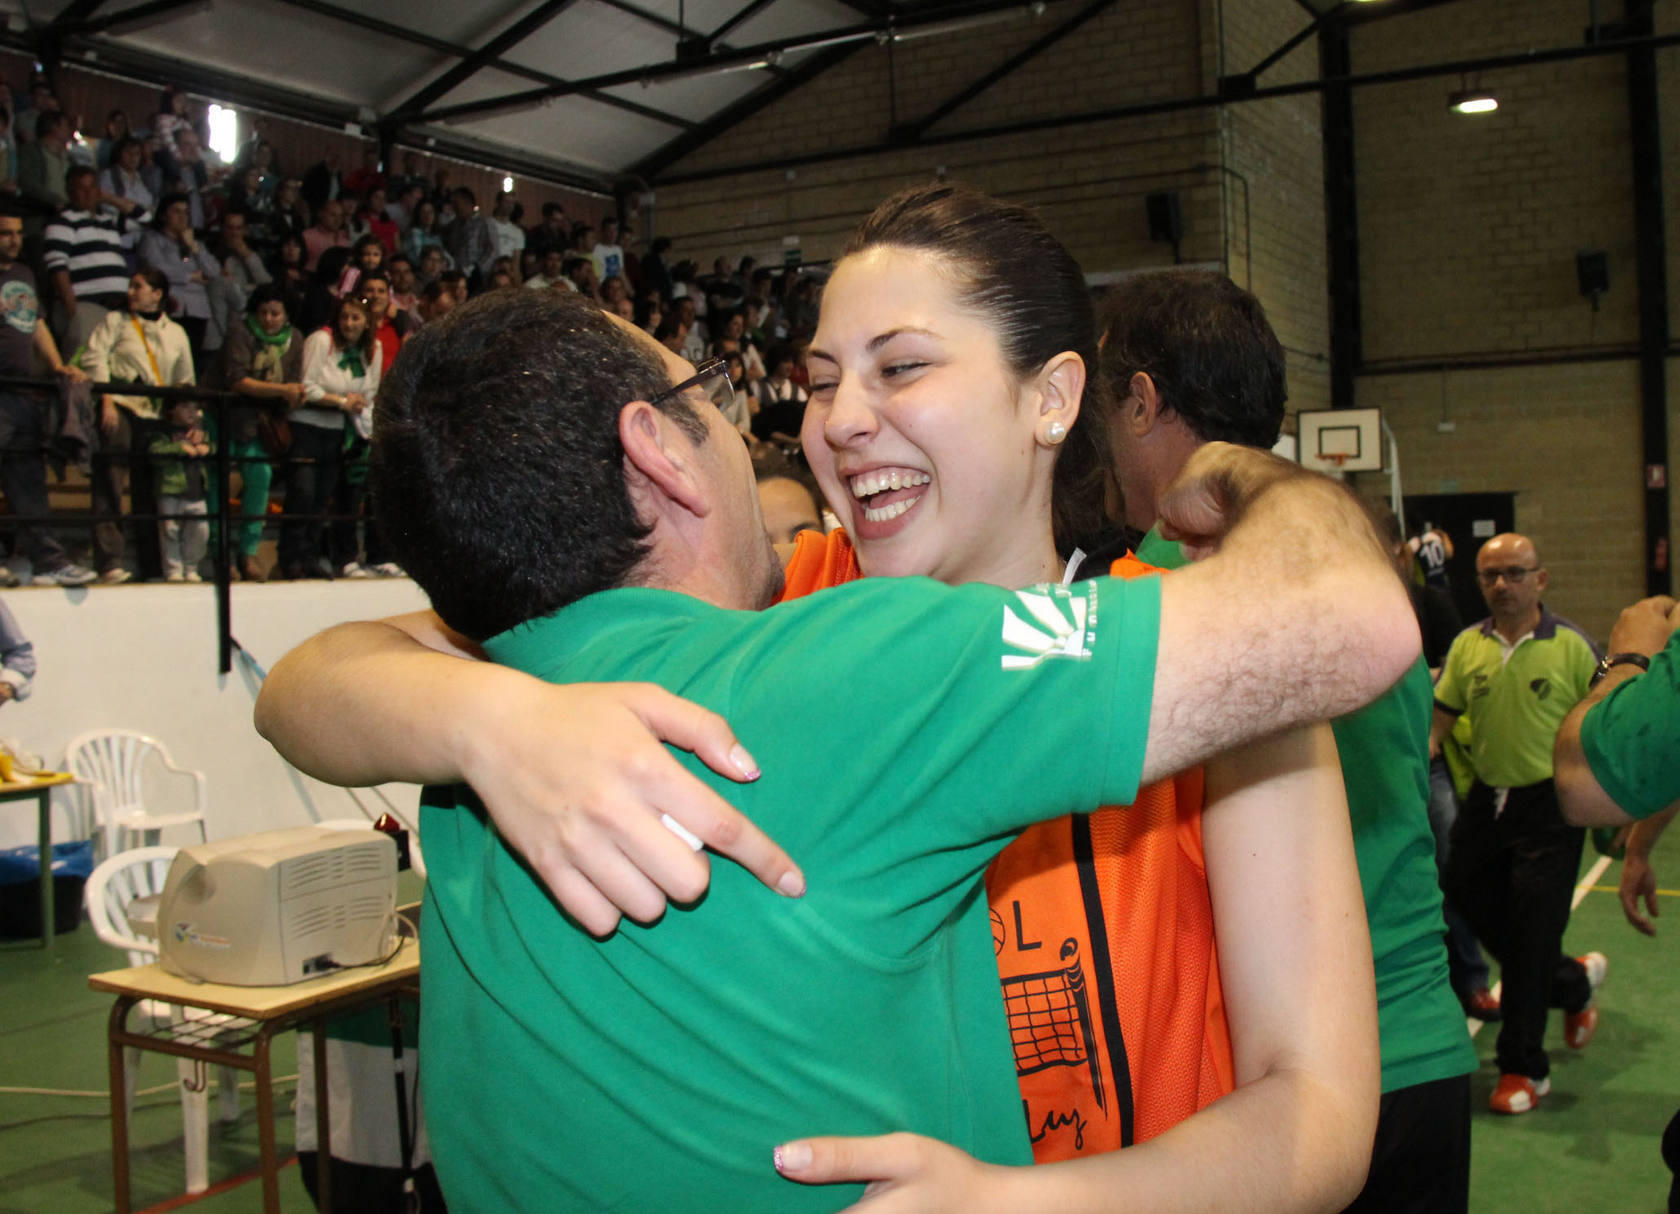 El Arroyo asciende por primera a Superliga-1 de voleibol femenino